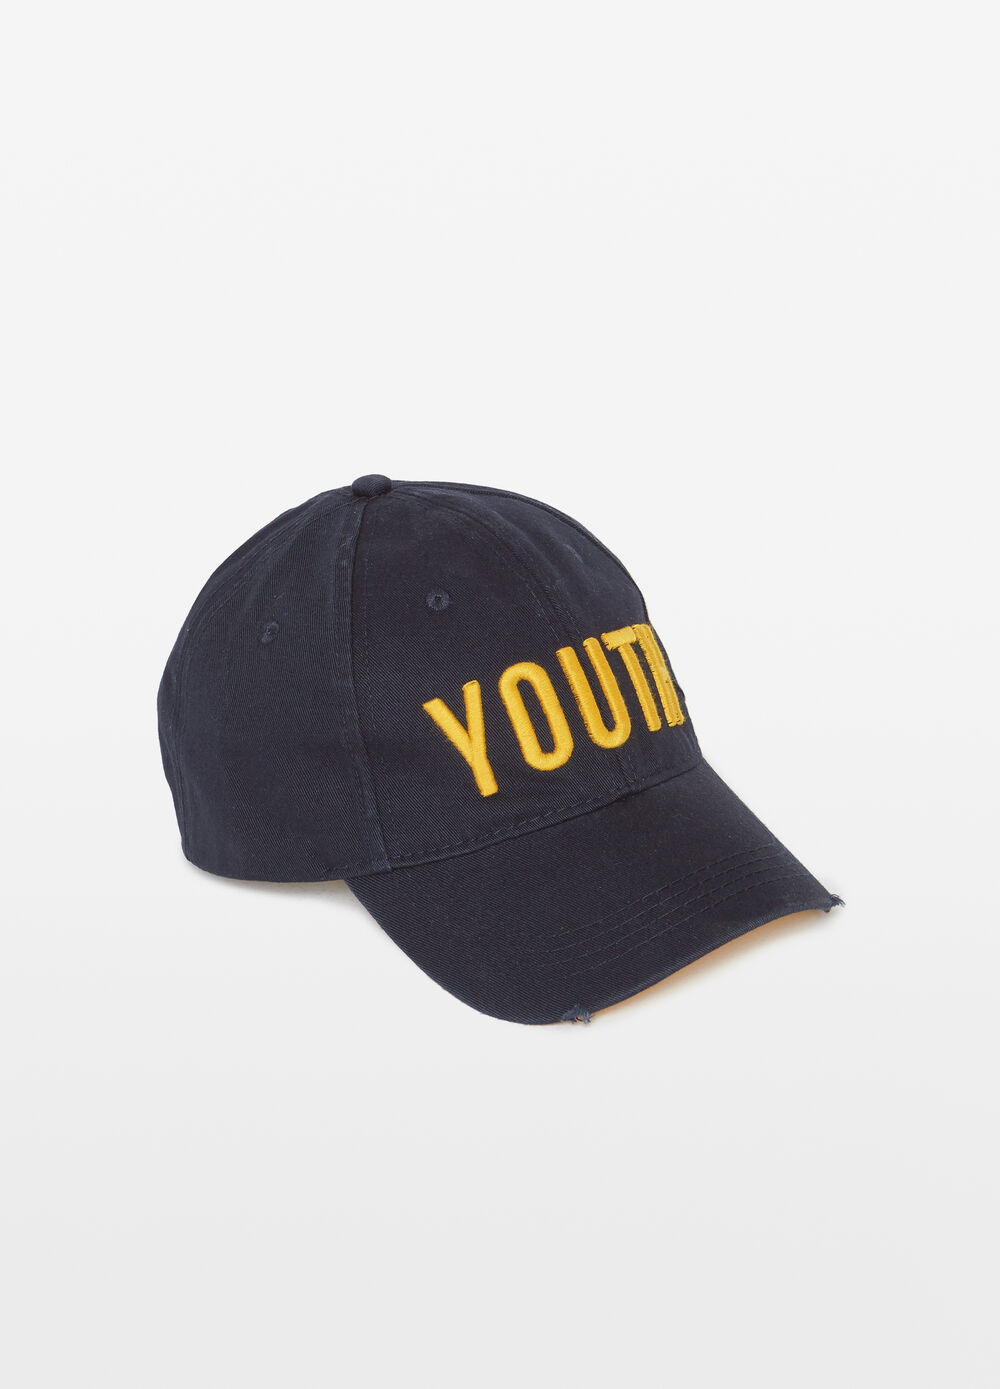 Baseball cap with lettering embroidery